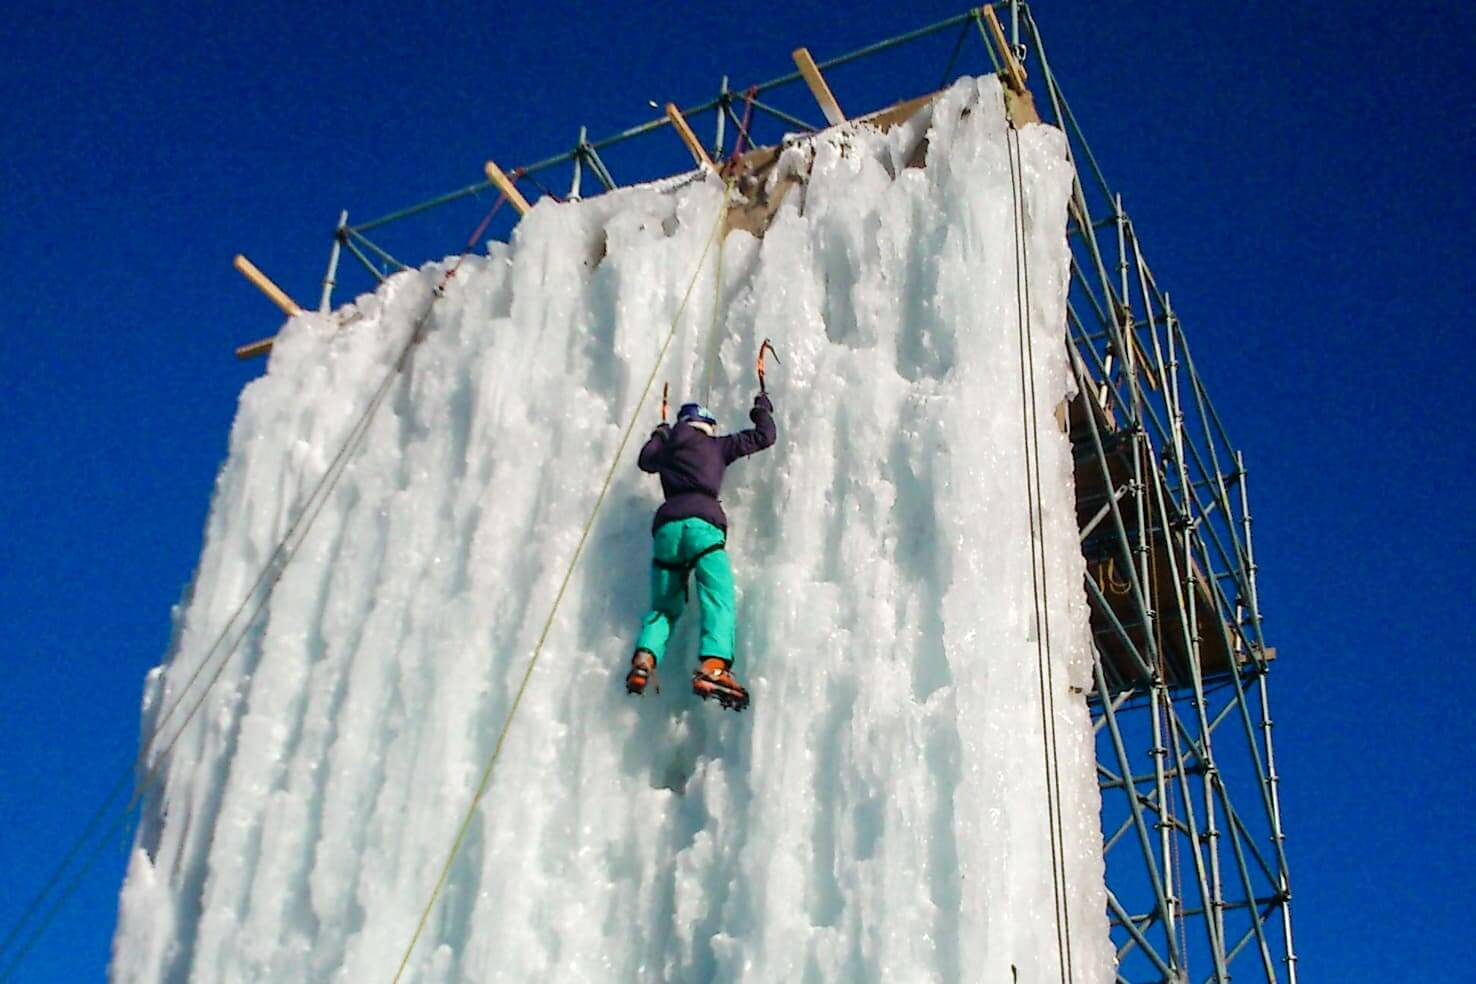 100 best things to do in Banff National Park, Canada - Try ice climbing